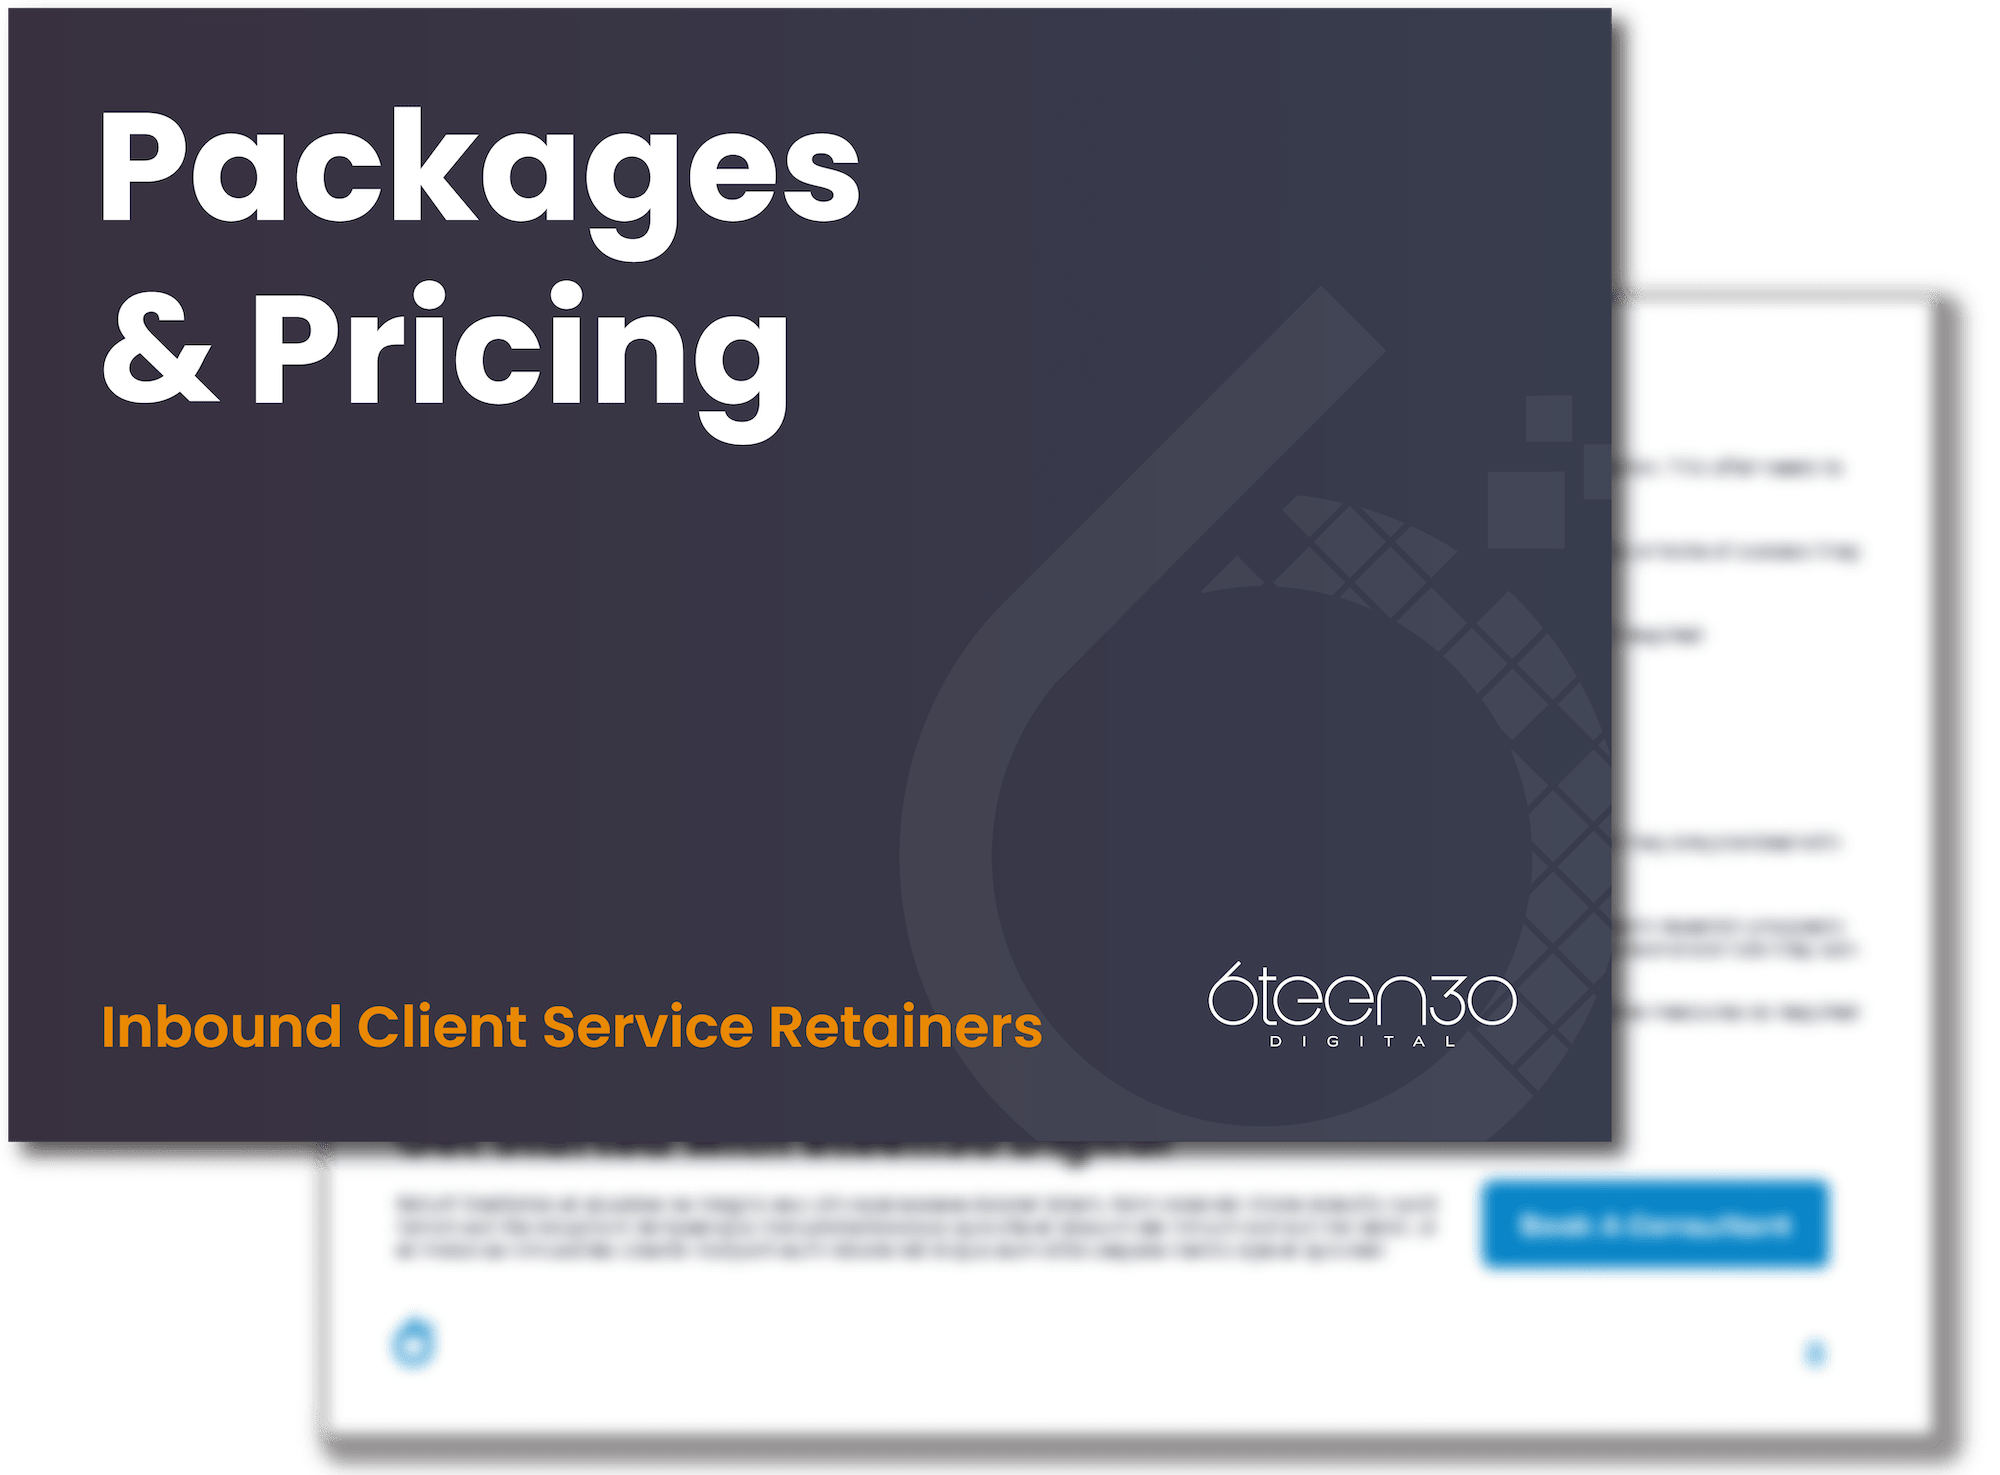 6teen30 Digital - Inbound Customer Service Packages and Pricing